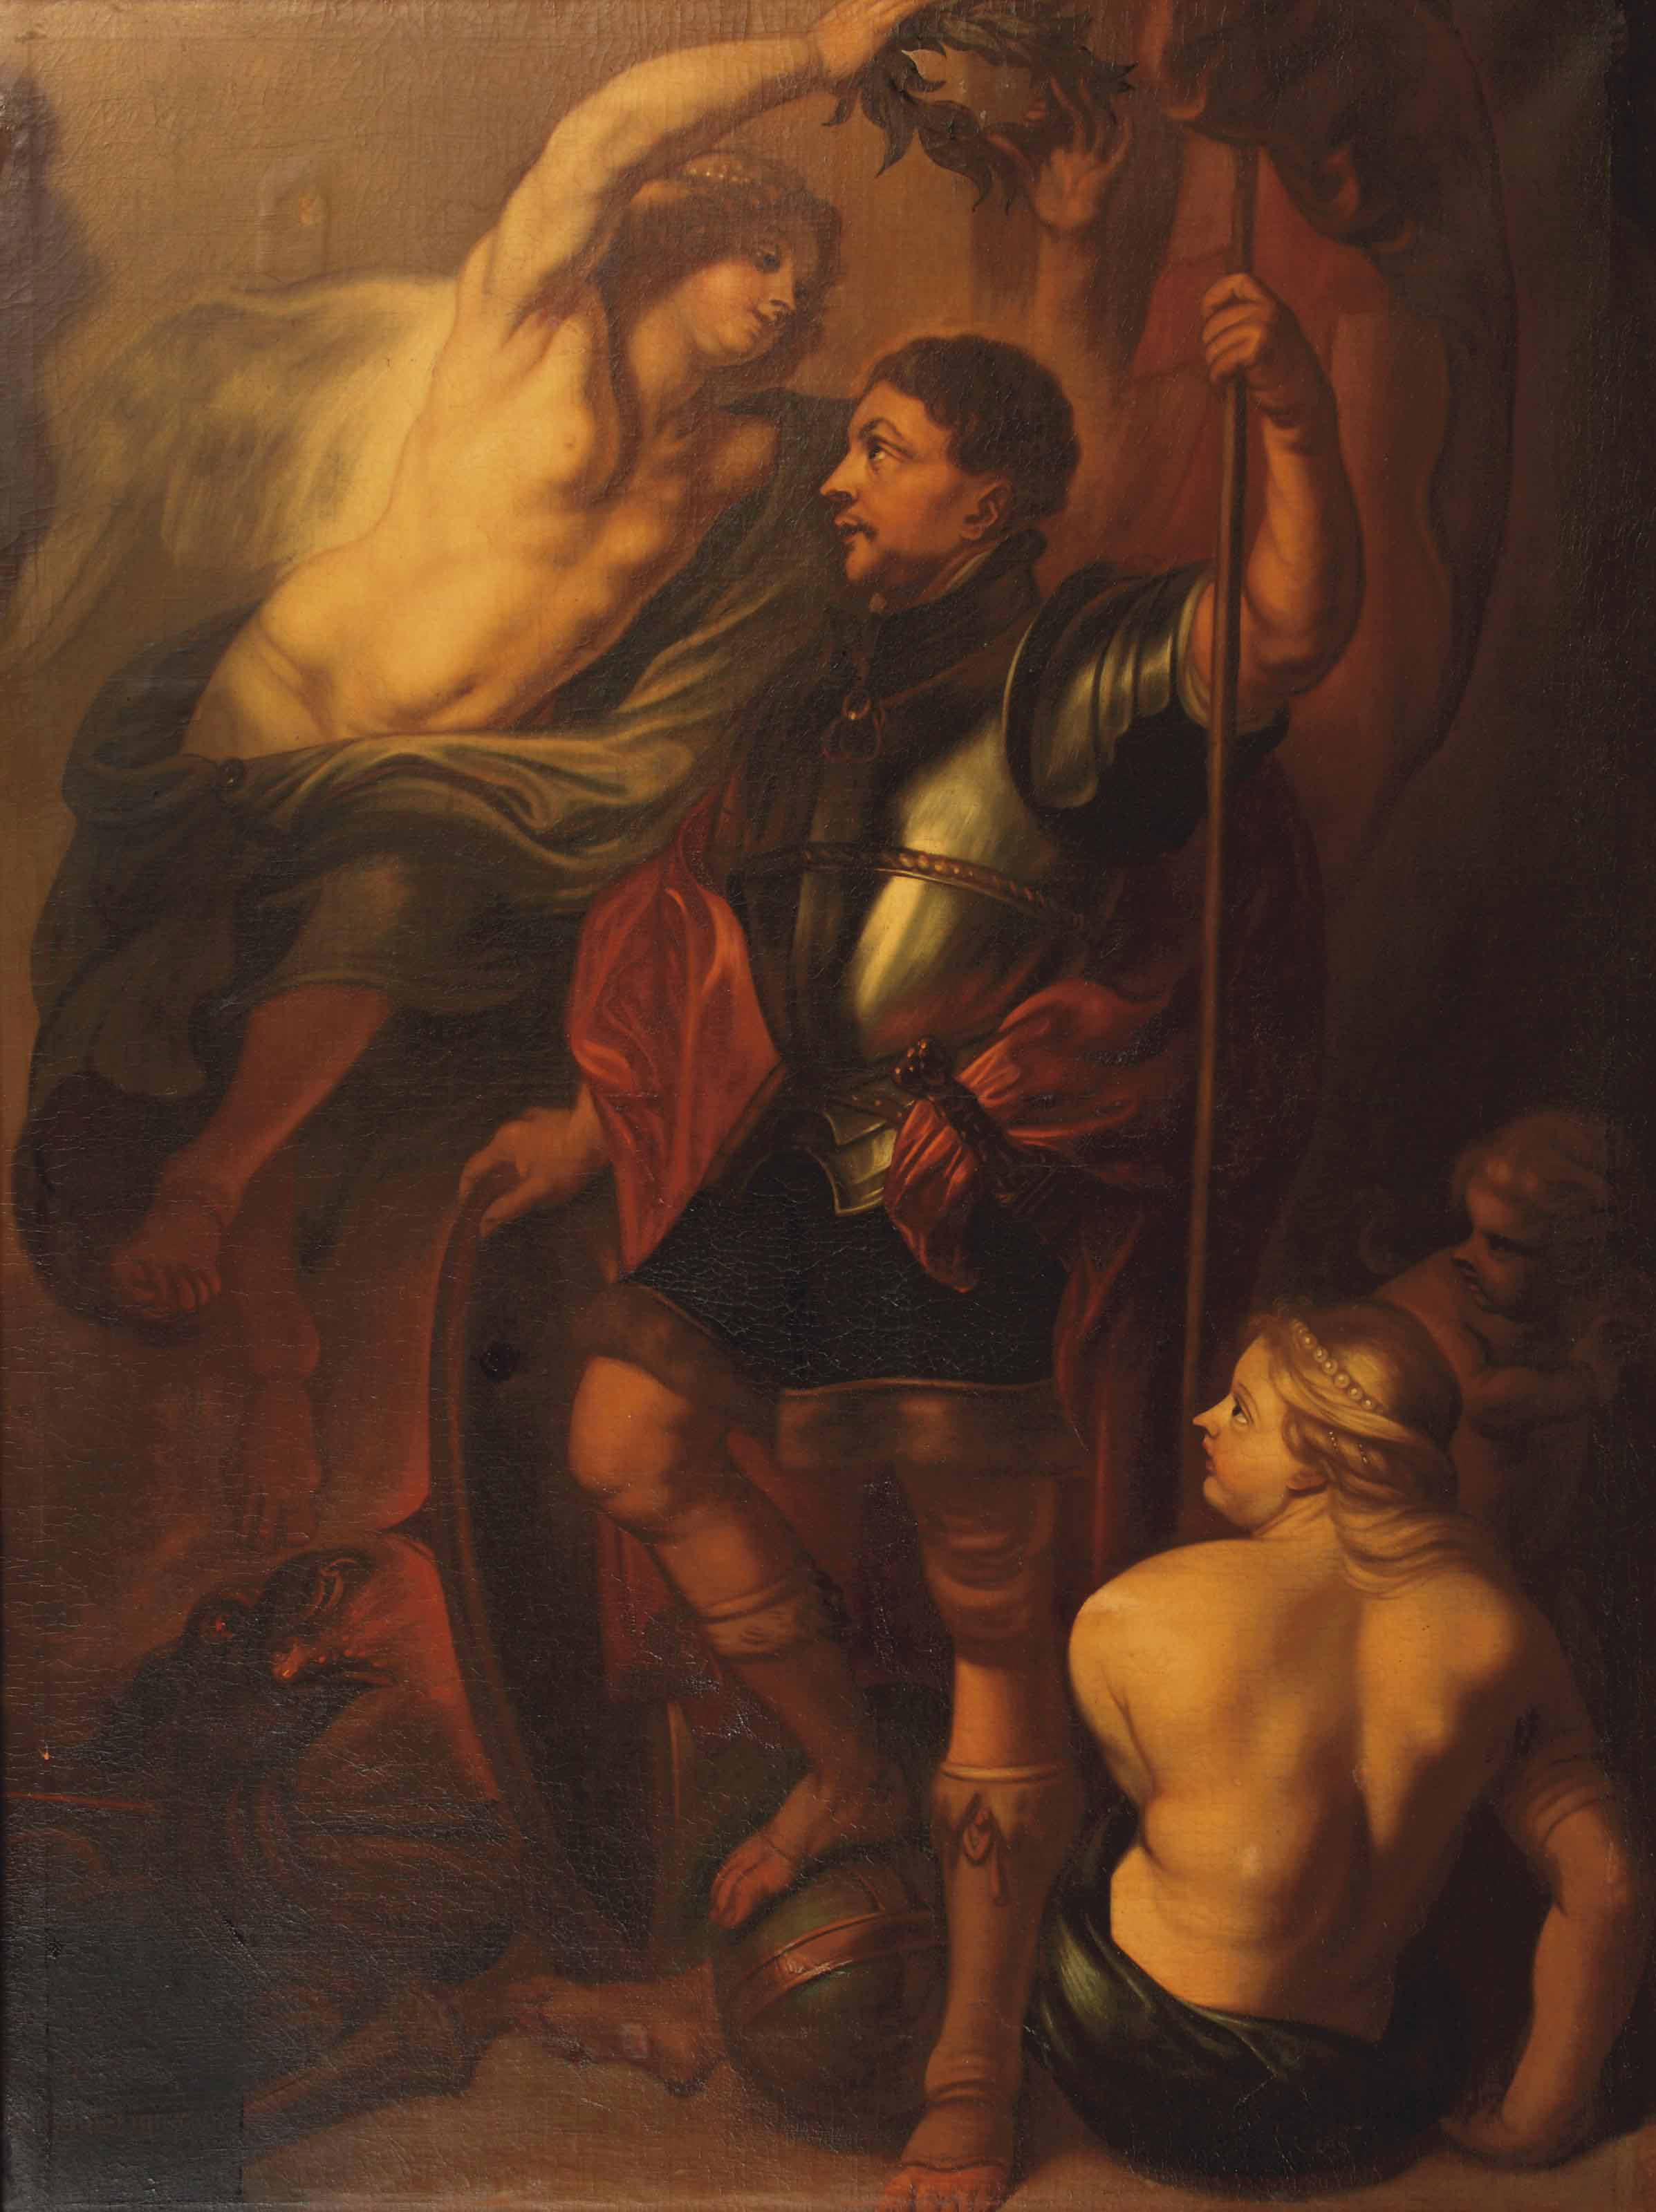 Saint George crowned with laurels